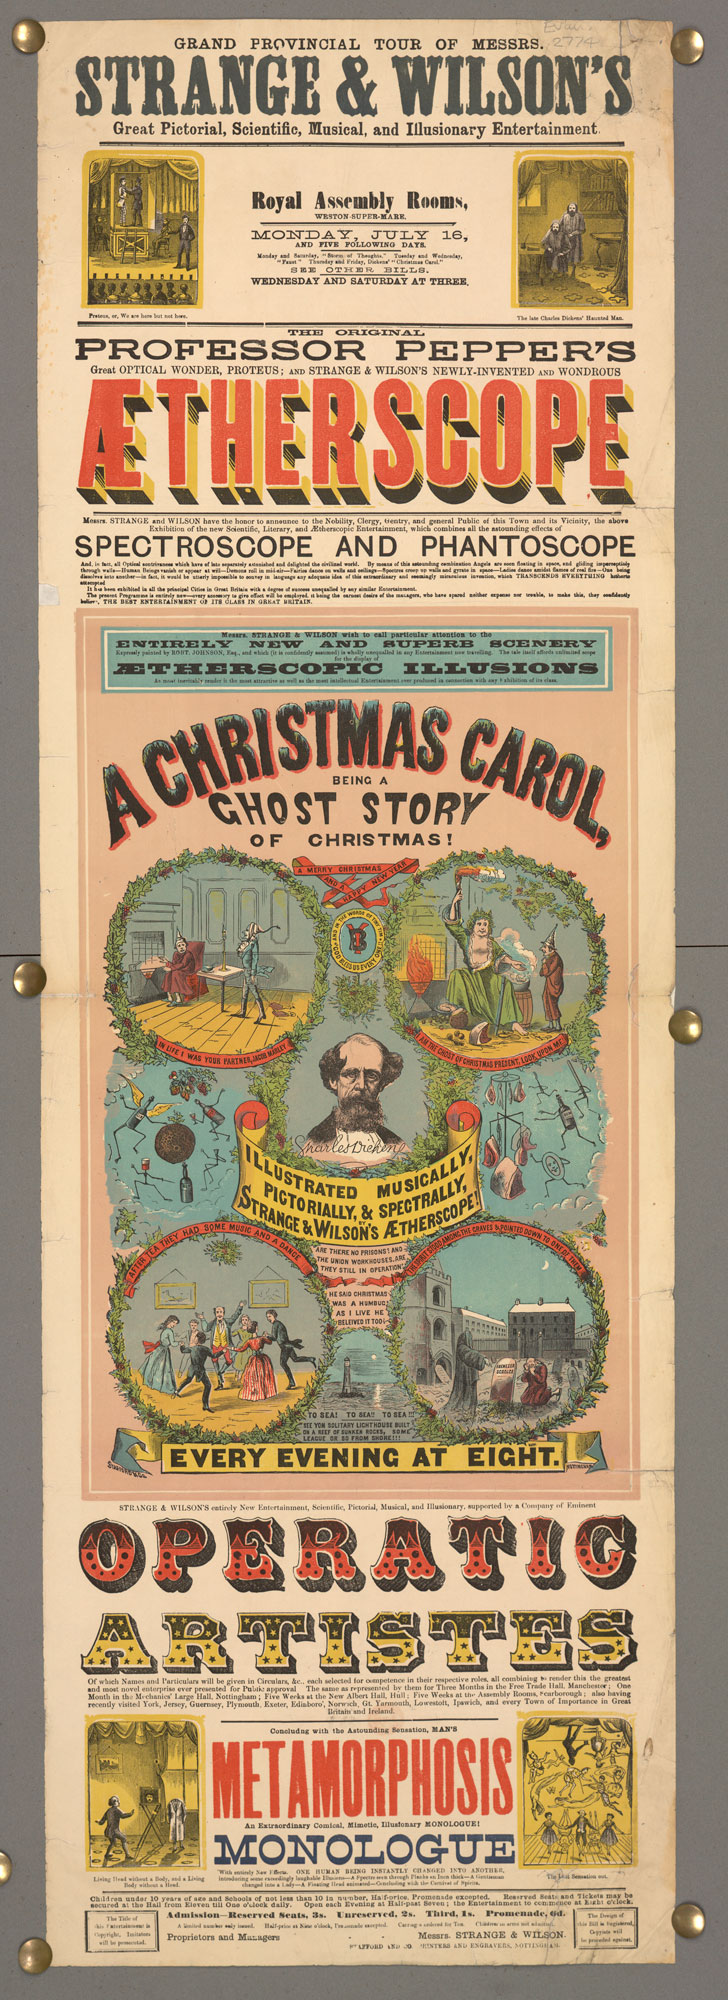 A playbill for the Grand provincial tour of Messrs. Strange & Wilson's great pictorial, scientific, musical, and illusionary entertainment [page: single sheet]